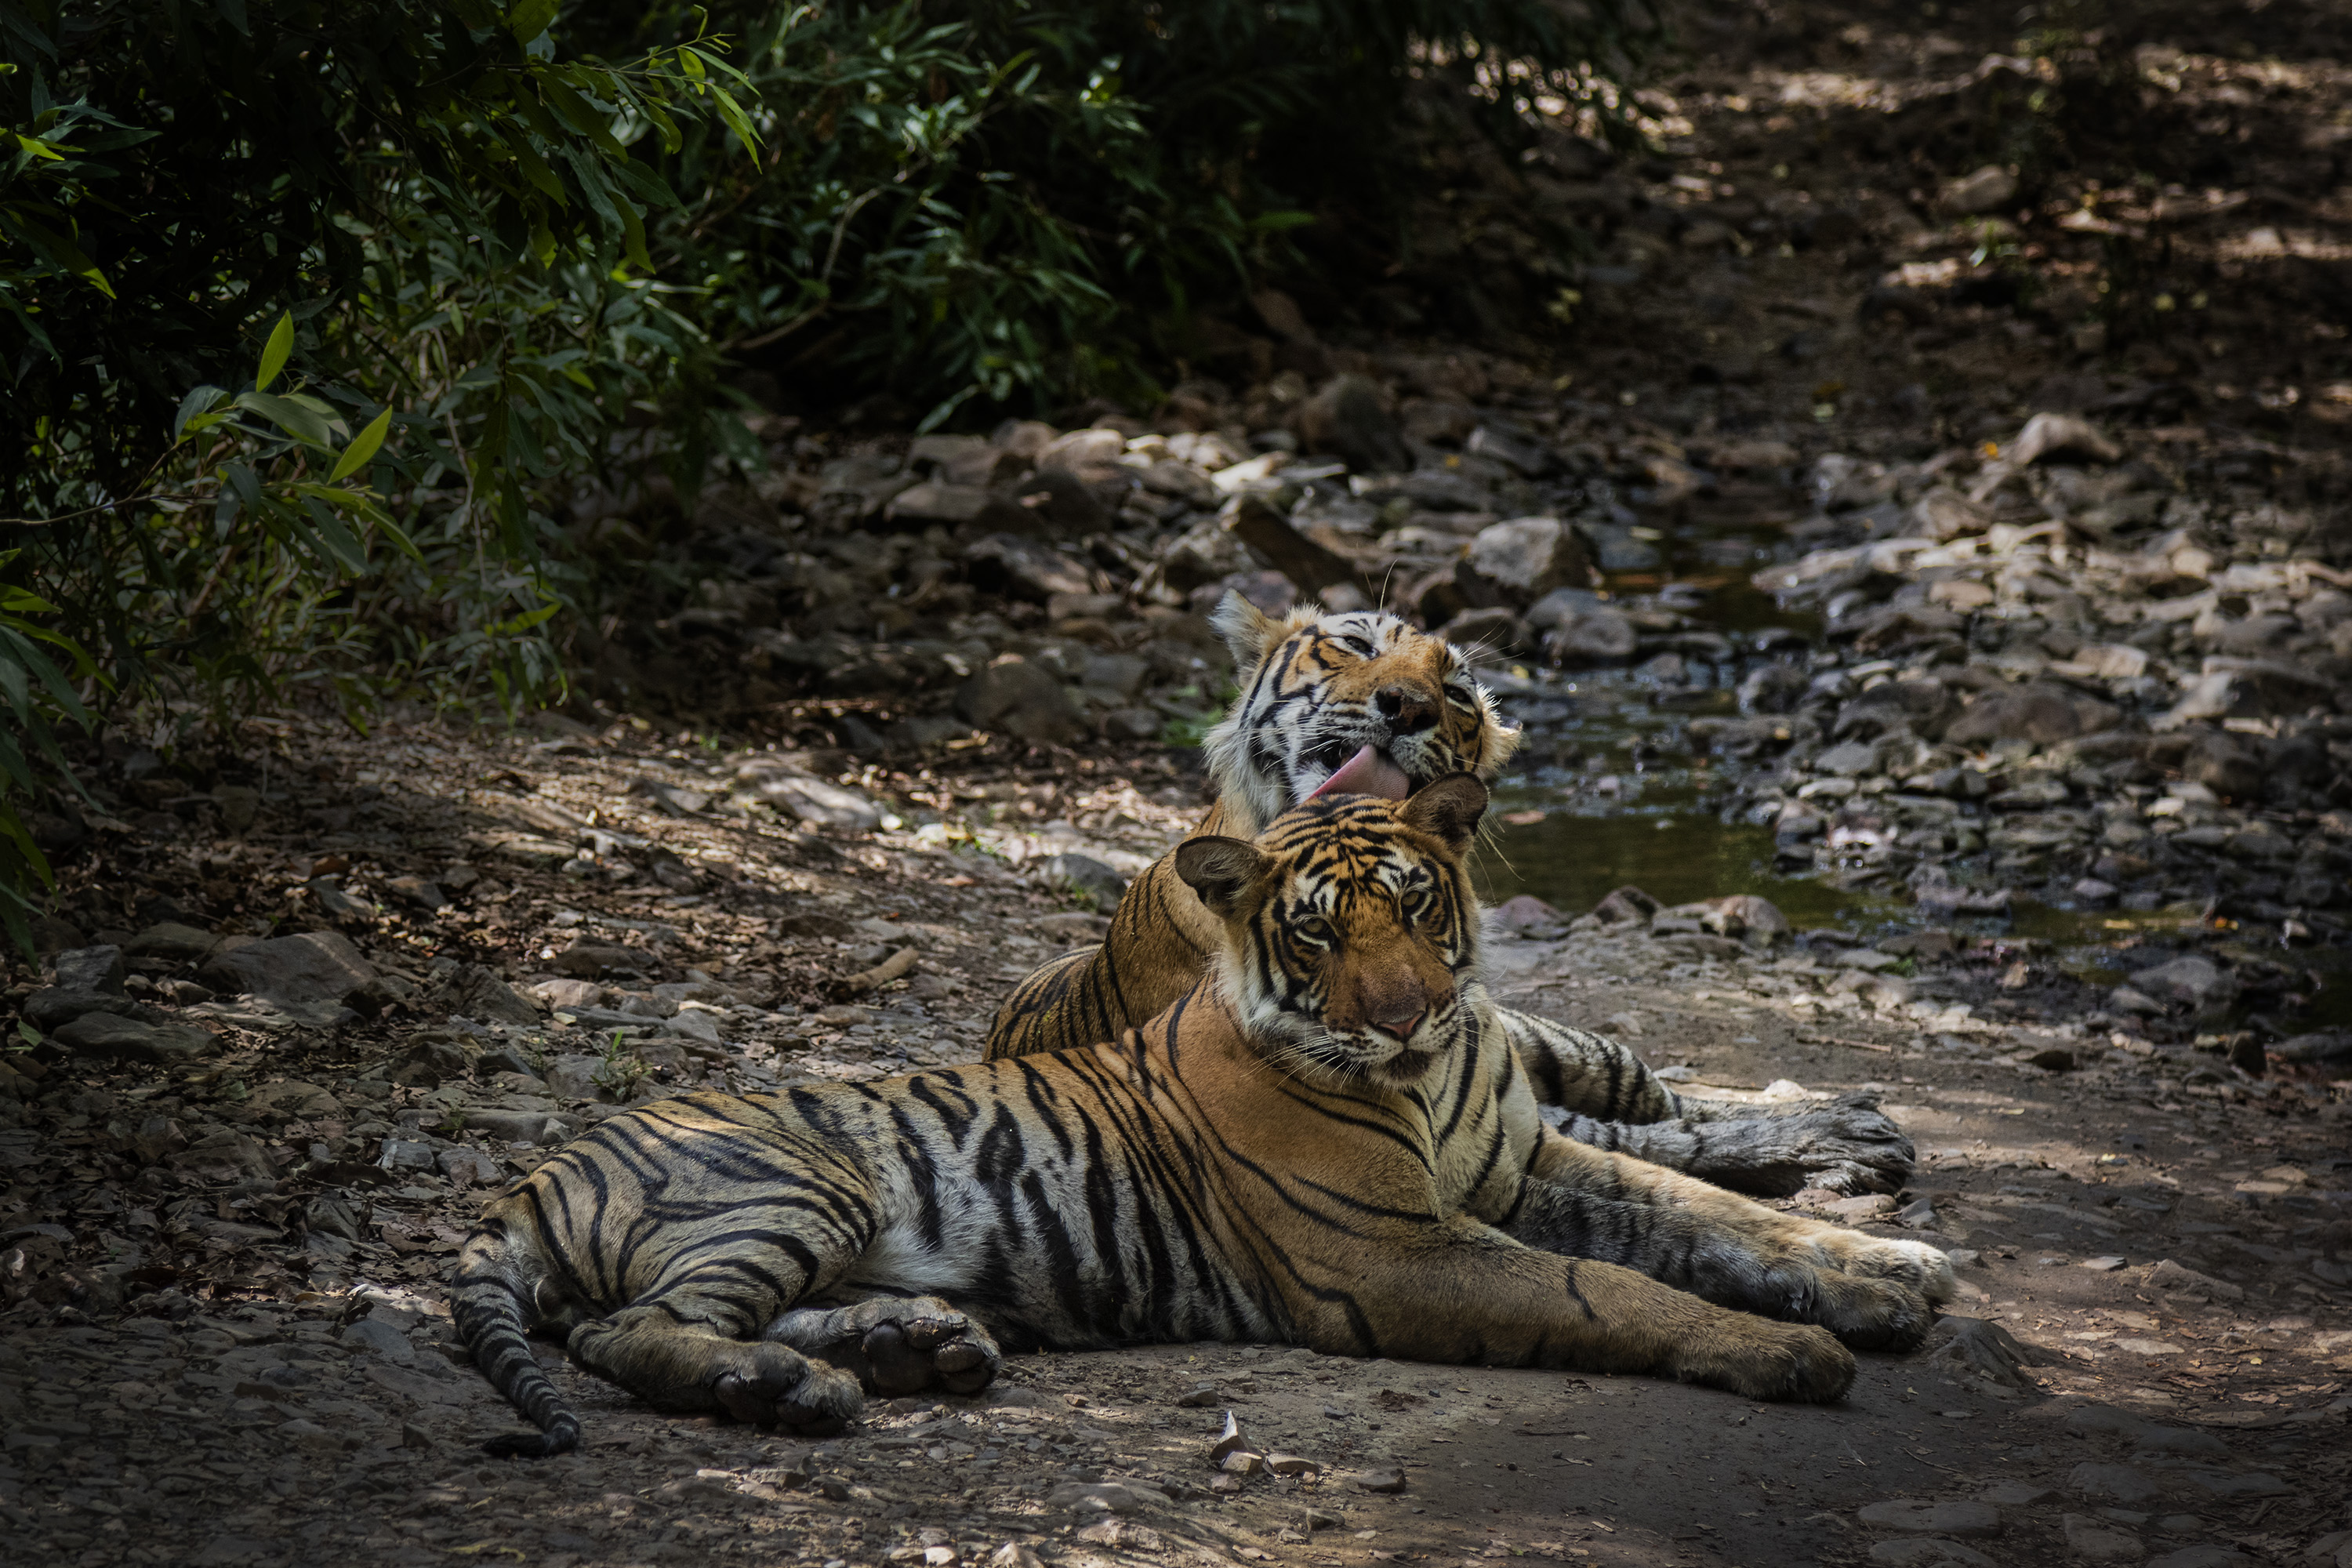 A tigress grooms her cub by licking its fur, as they rest by a pool. Cubs tend to stay with their mothers till the age of two. Location: Ranthambore